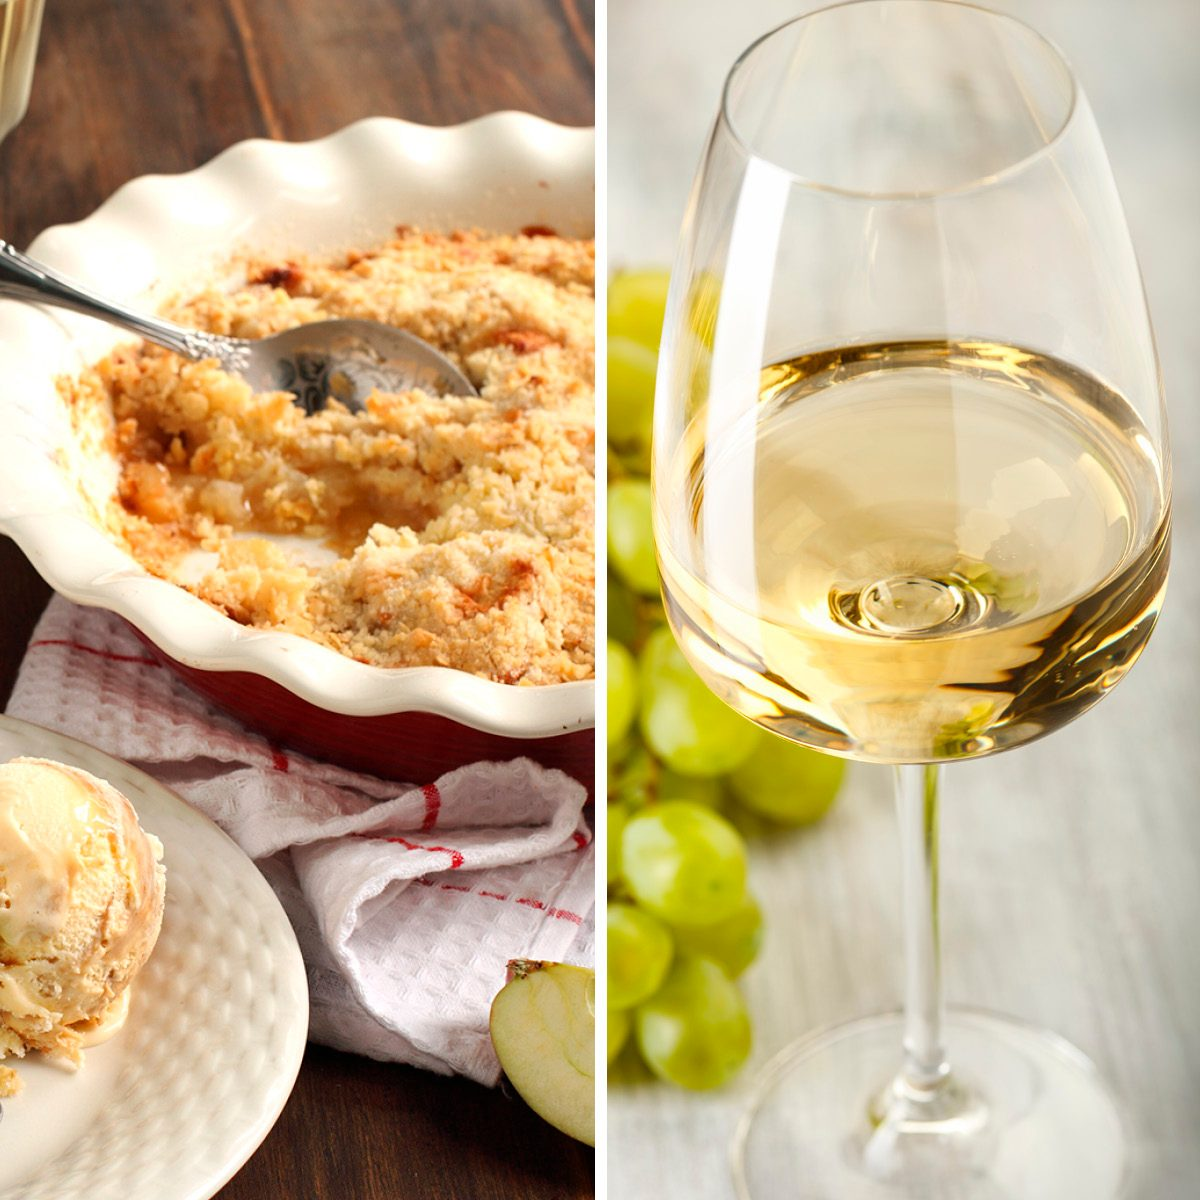 Apple crumble; Shutterstock ID 113714680; Job (TFH, TOH, RD, BNB, CWM, CM): TOH Wine. Grapes. Glass with white wine; Shutterstock ID 606046451; Job (TFH, TOH, RD, BNB, CWM, CM): TOH